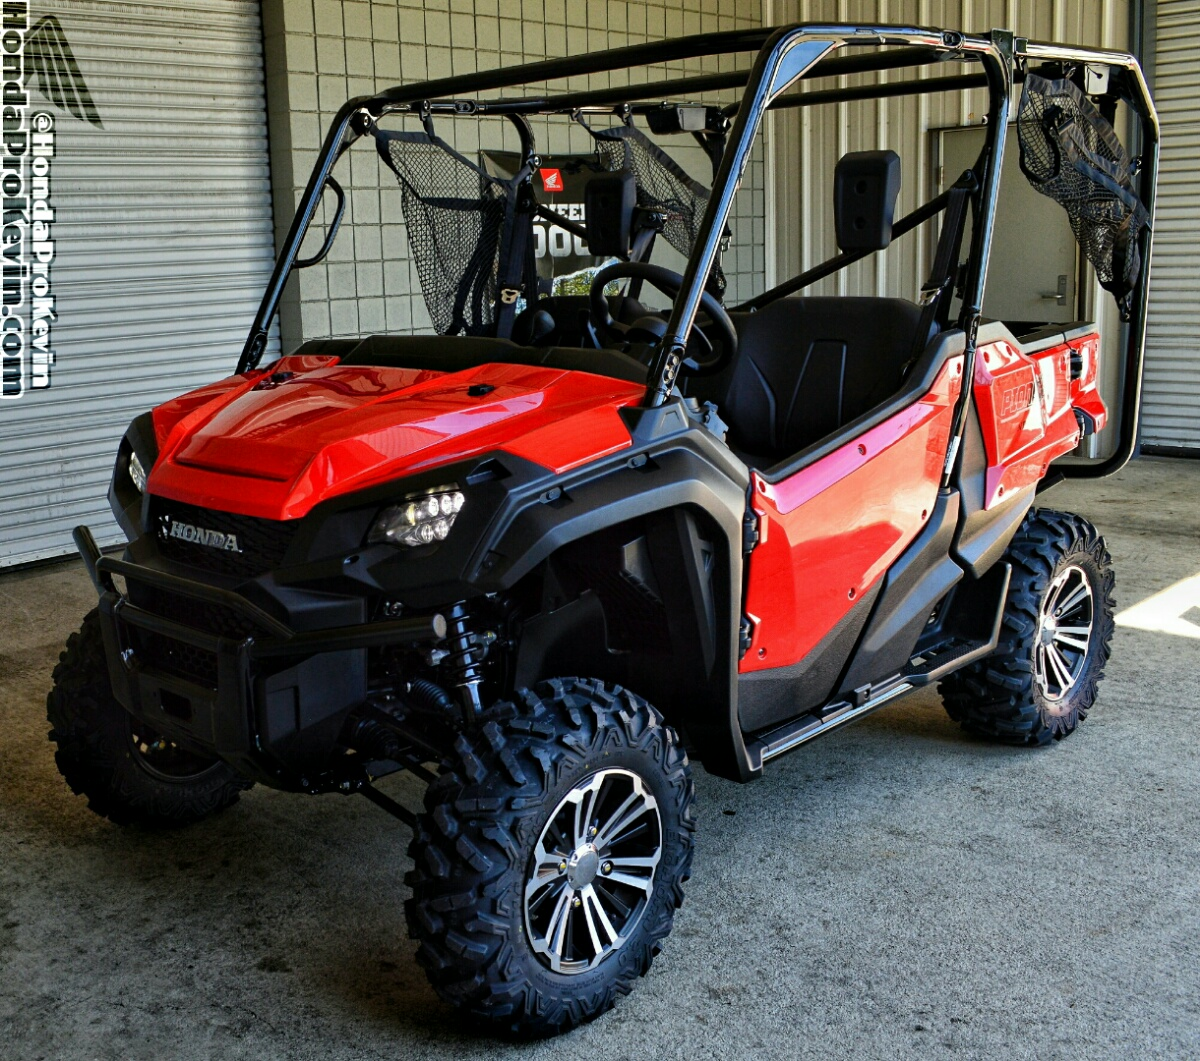 2017 Honda Pioneer 1000-5 Deluxe Review / Specs - Side by Side ATV / UTV / SxS / Utility Vehicle 4x4 - SXS1000 - SXS10M5